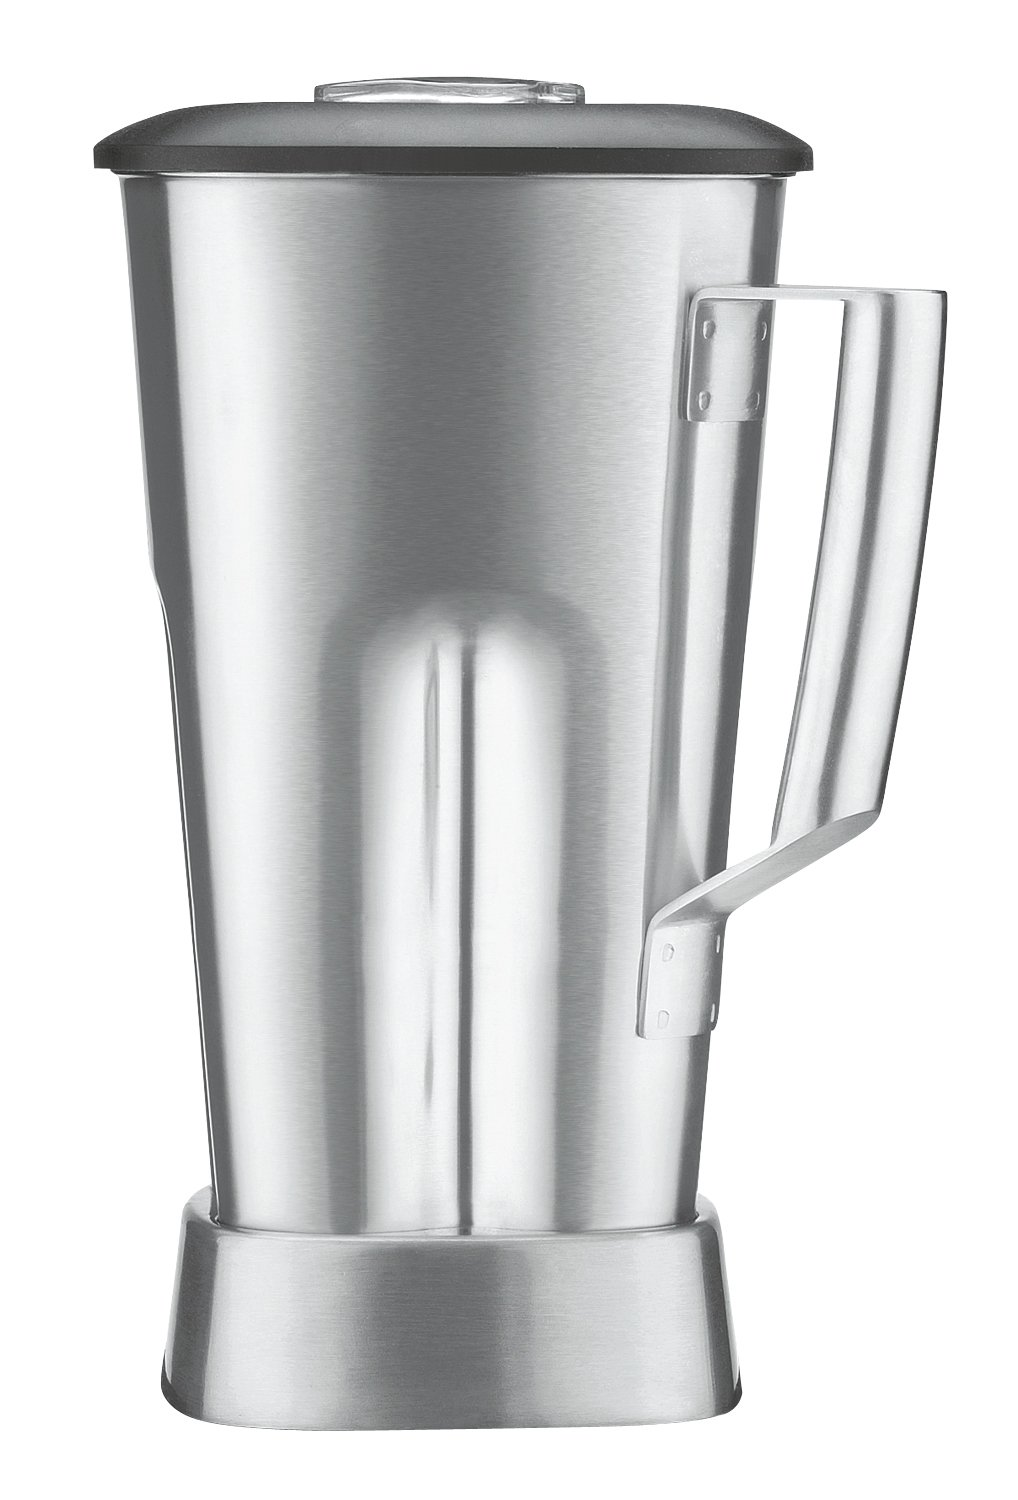 Waring Commercial CAC90 Stainless Steel Container, 64-Ounce by Waring